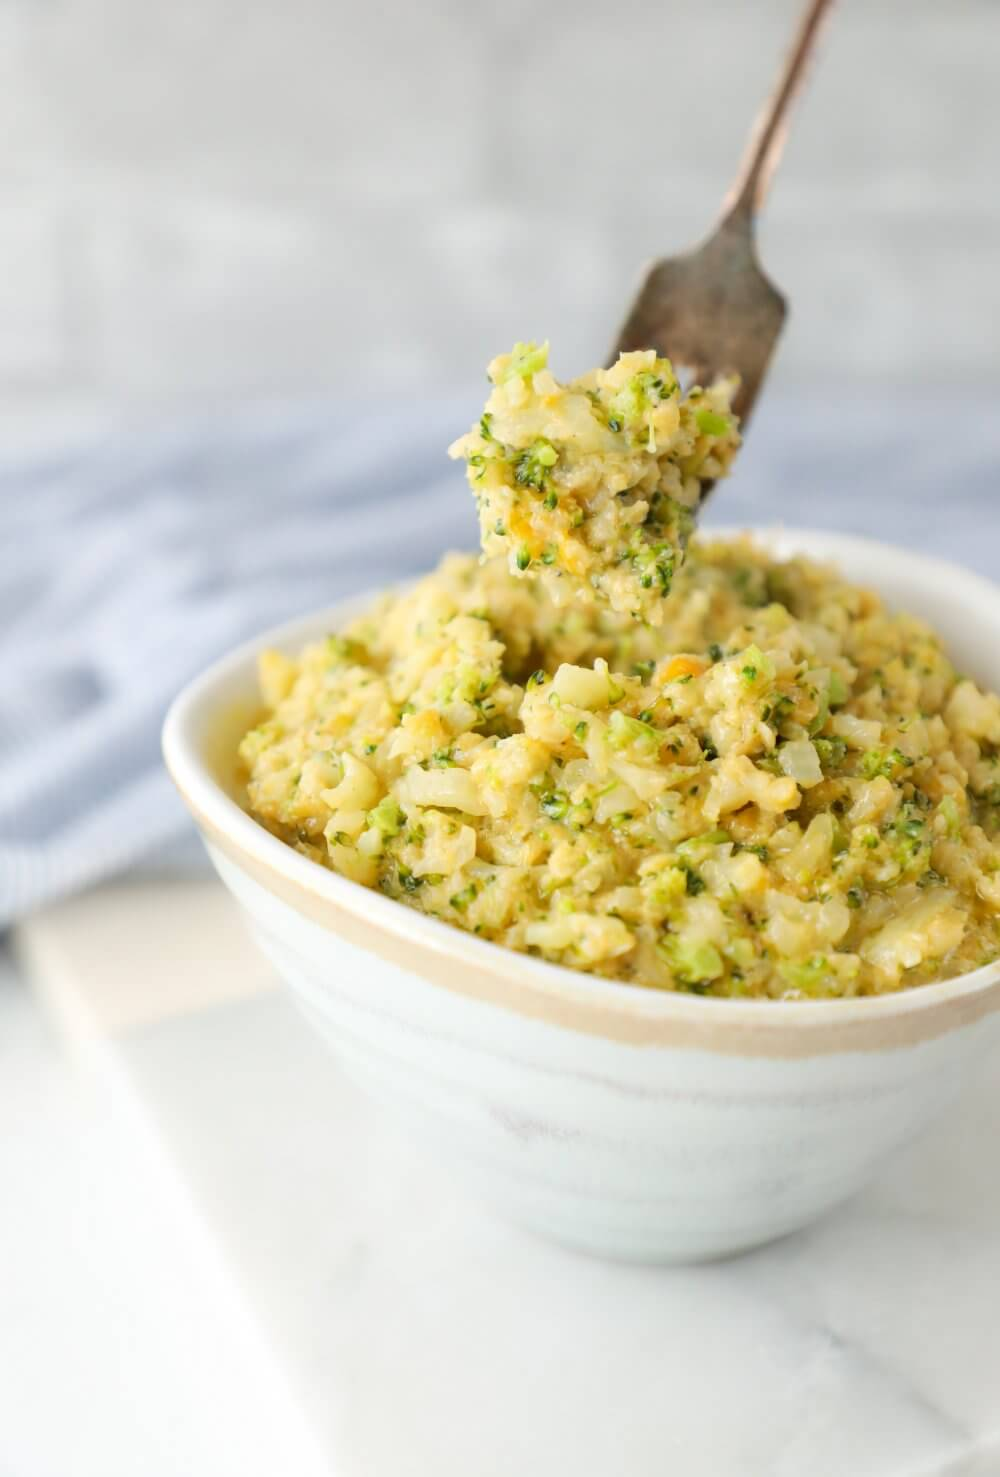 Forkful of Keto Cheesy Broccoli & Cauliflower Rice